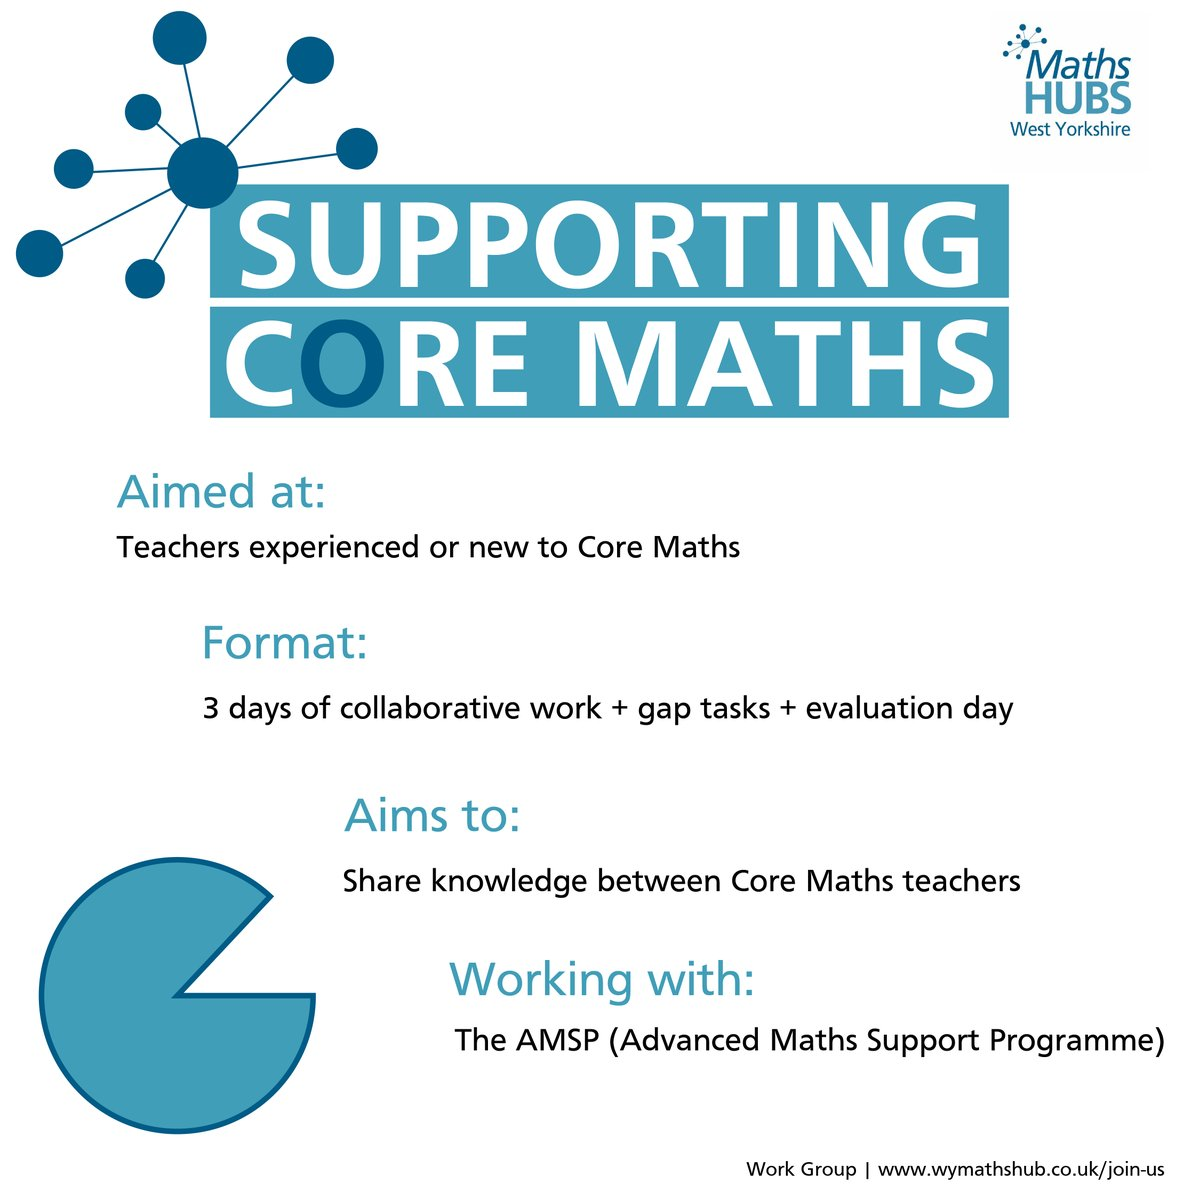 🔹The success of Core Maths relies on the pool of enthusiastic teachers that provide students with the necessary expertise and experience.  🔹Join this FREE Work Group that will explore the philosophy of Core Maths: https://t.co/X7paNkvqPL   #WestYorkshire #MathsHub #WorkGroup